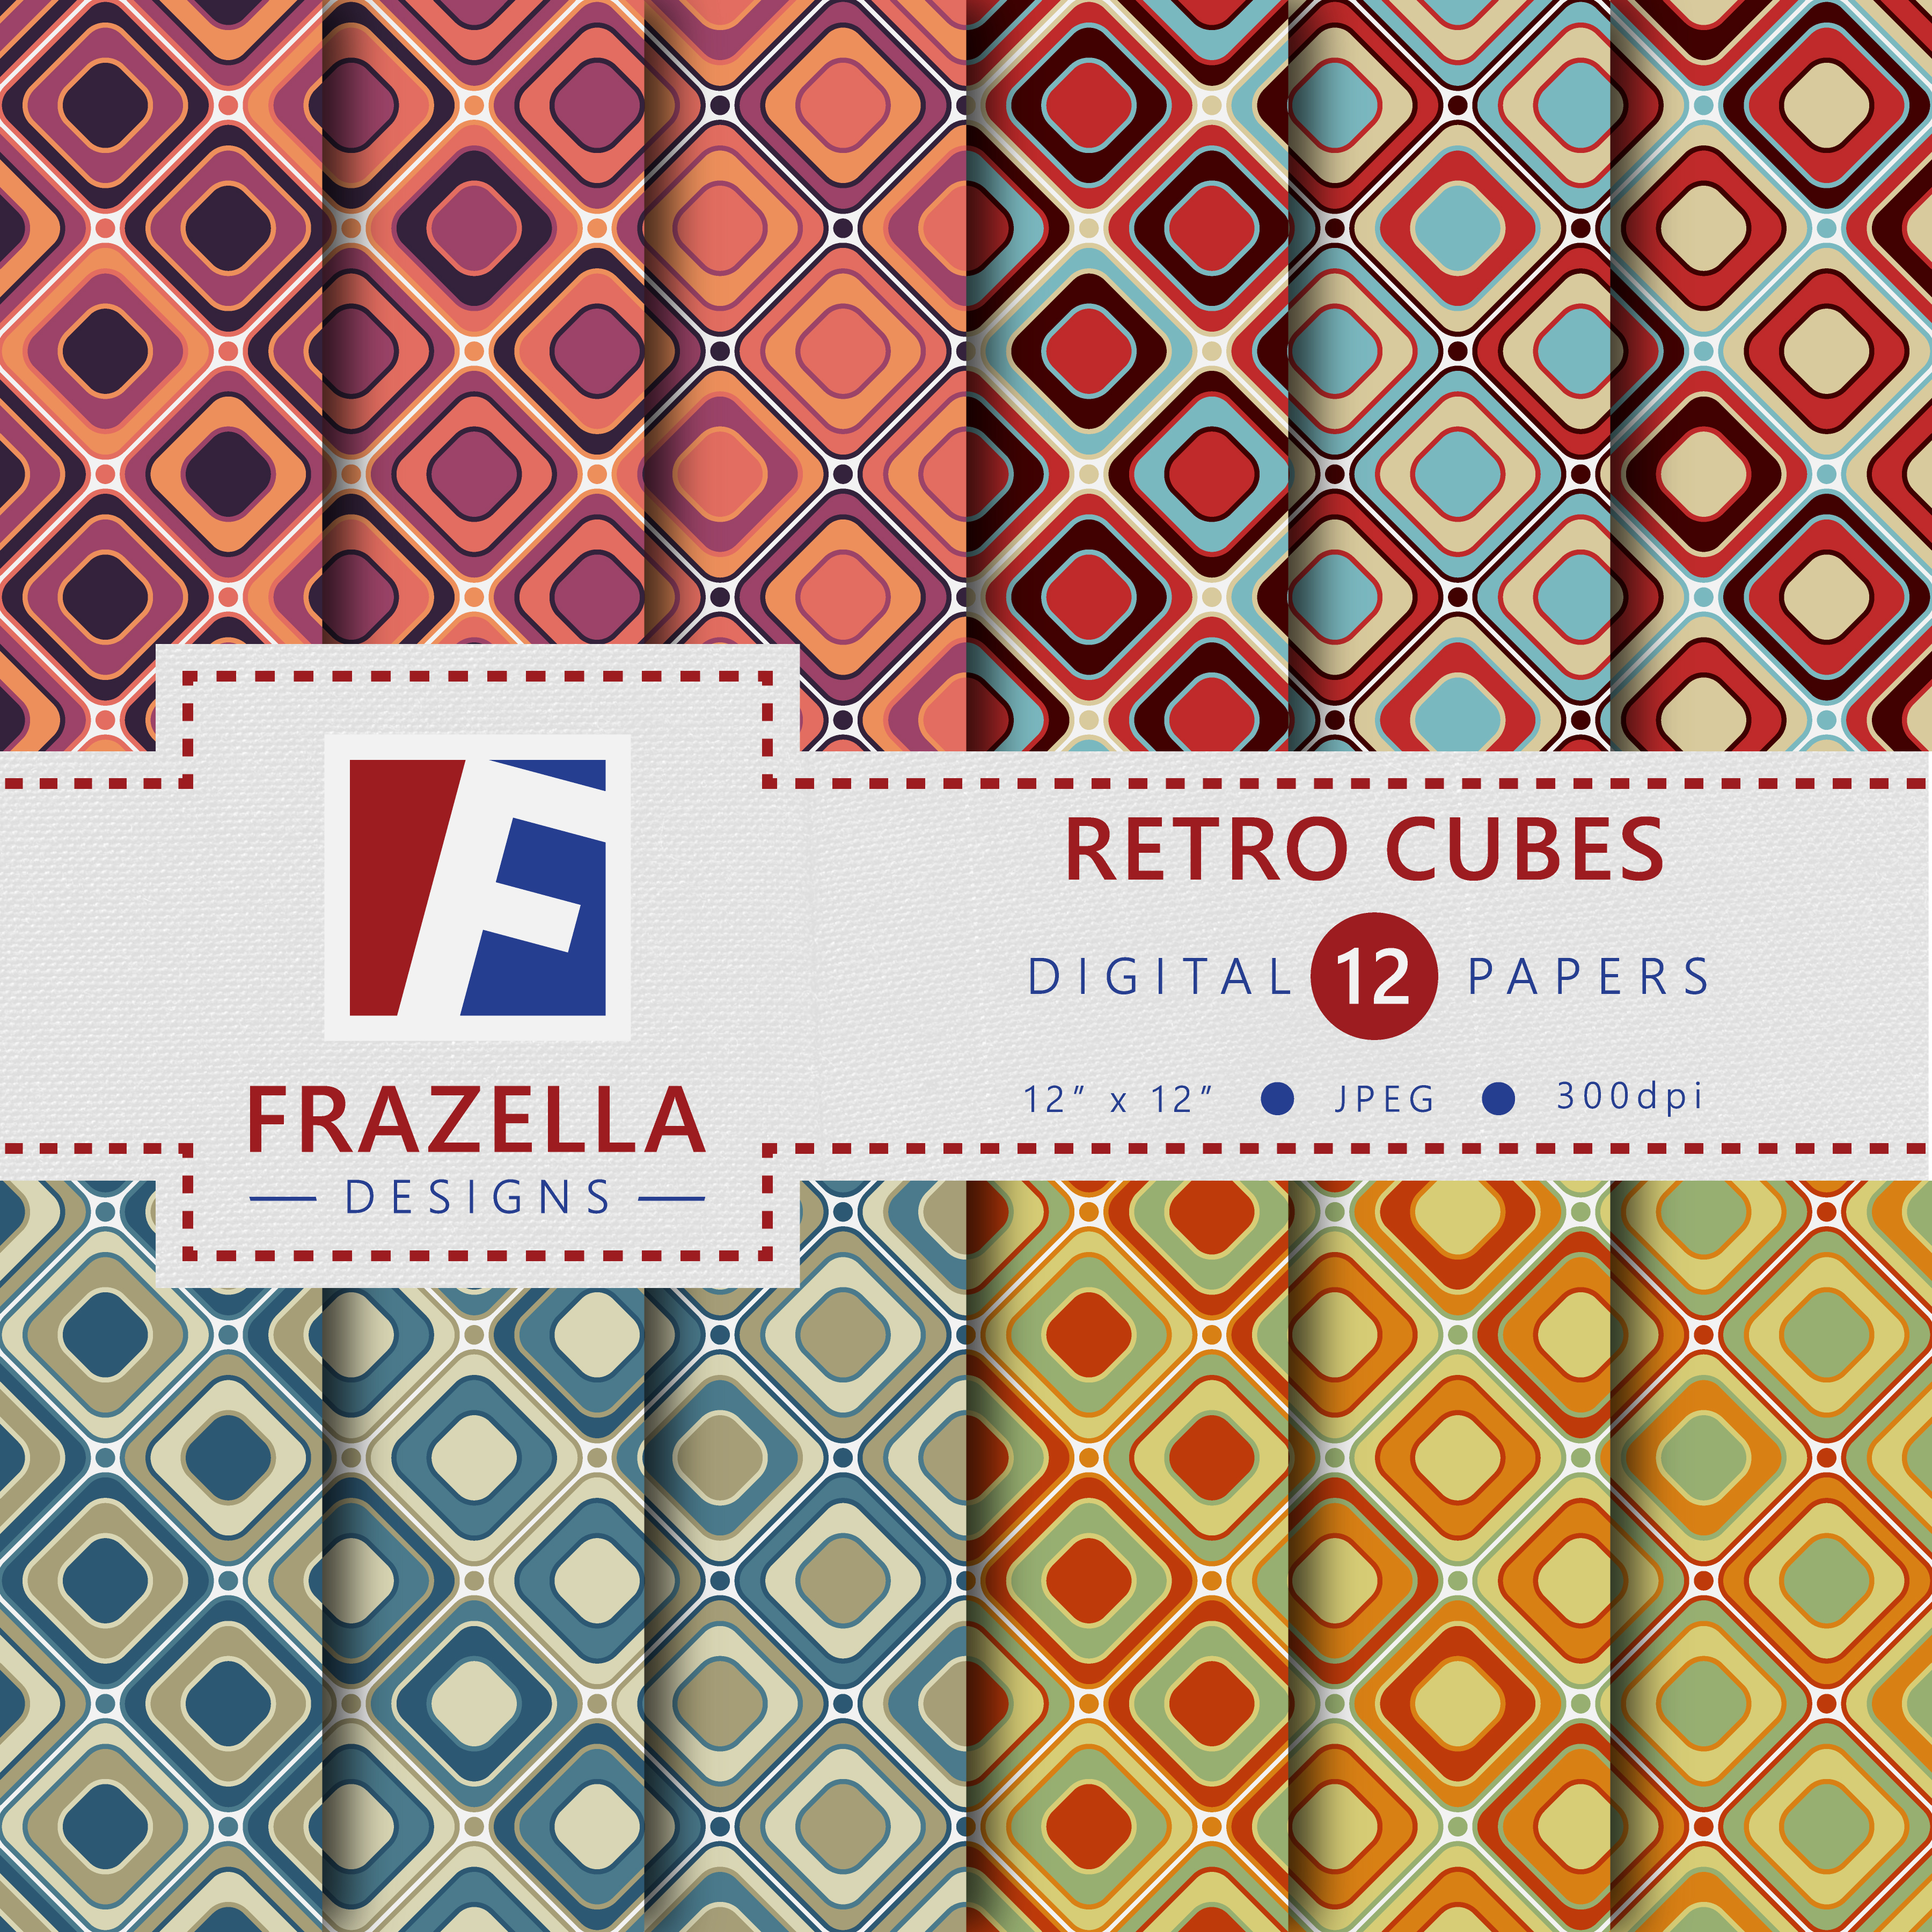 Download Free Colorful Retro Cubes Digital Paper Collection Graphic By for Cricut Explore, Silhouette and other cutting machines.